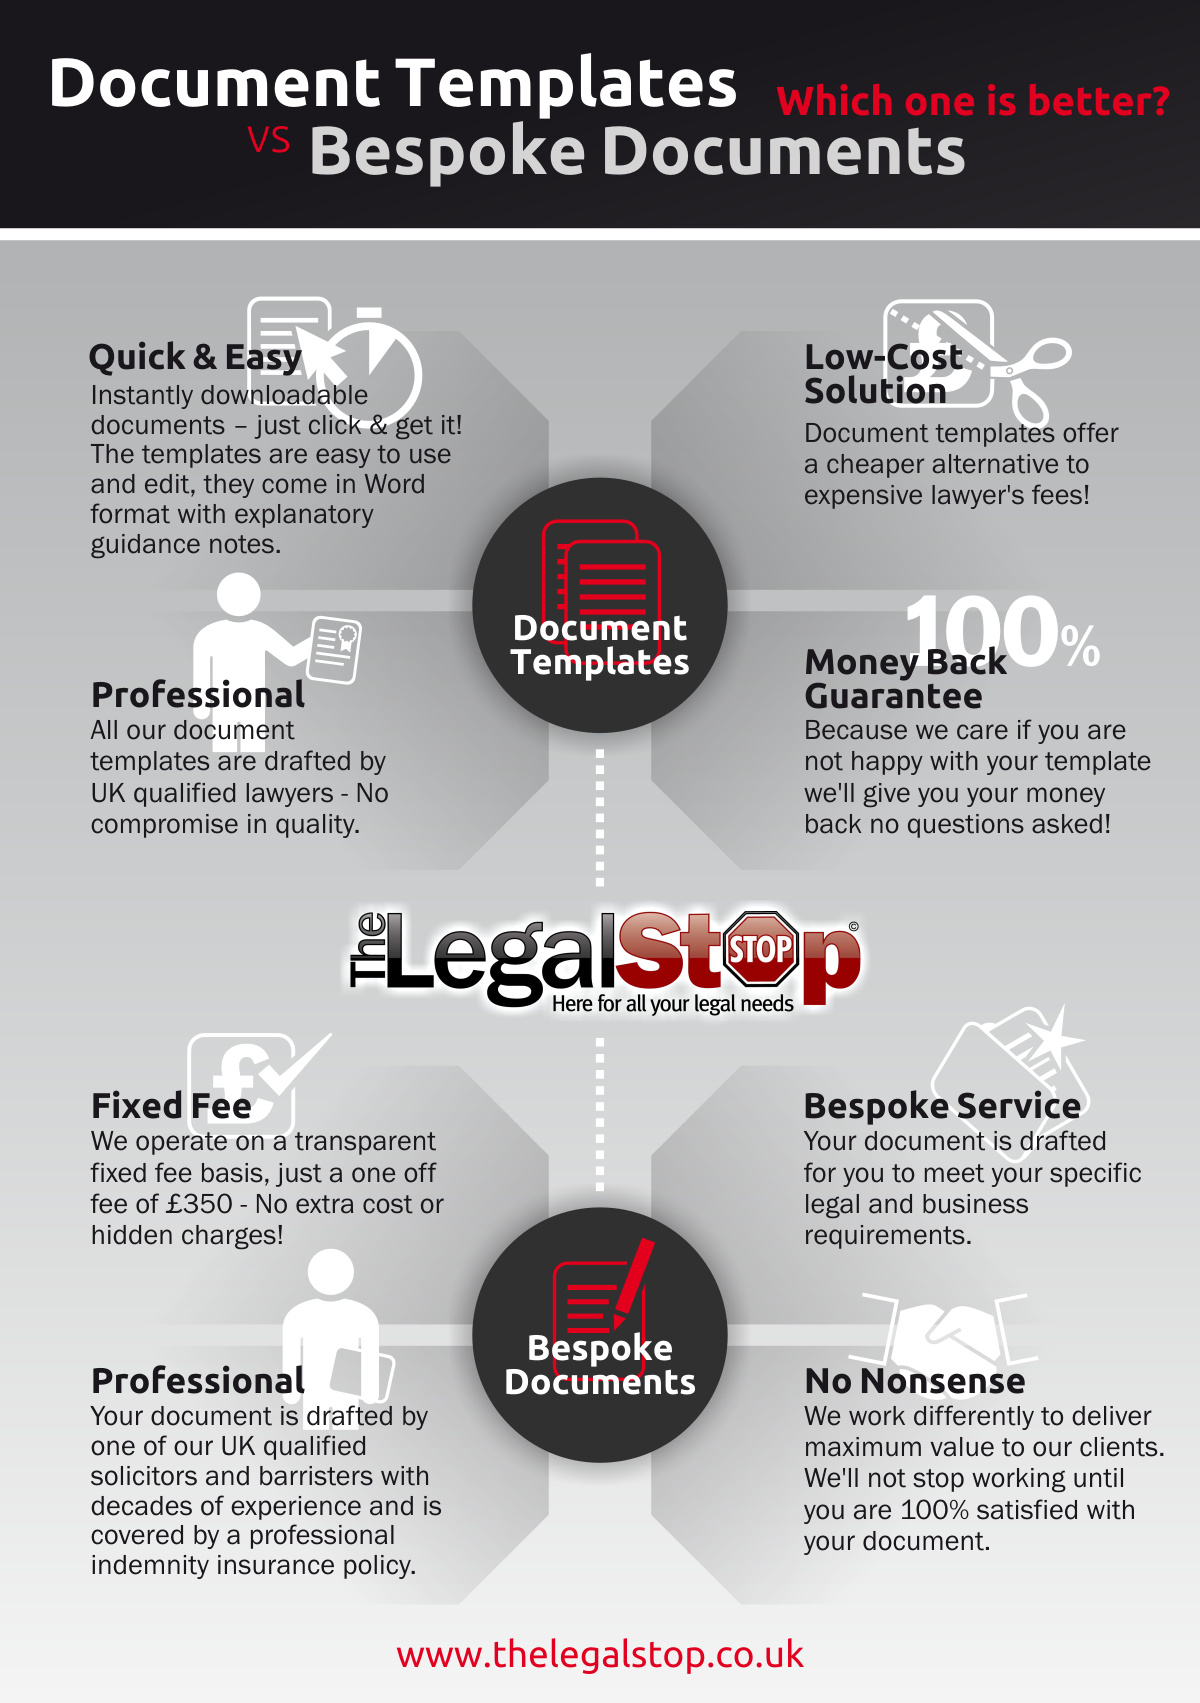 thelegalstop templates vs bespoke_1200px - Free Legal Documents Templates